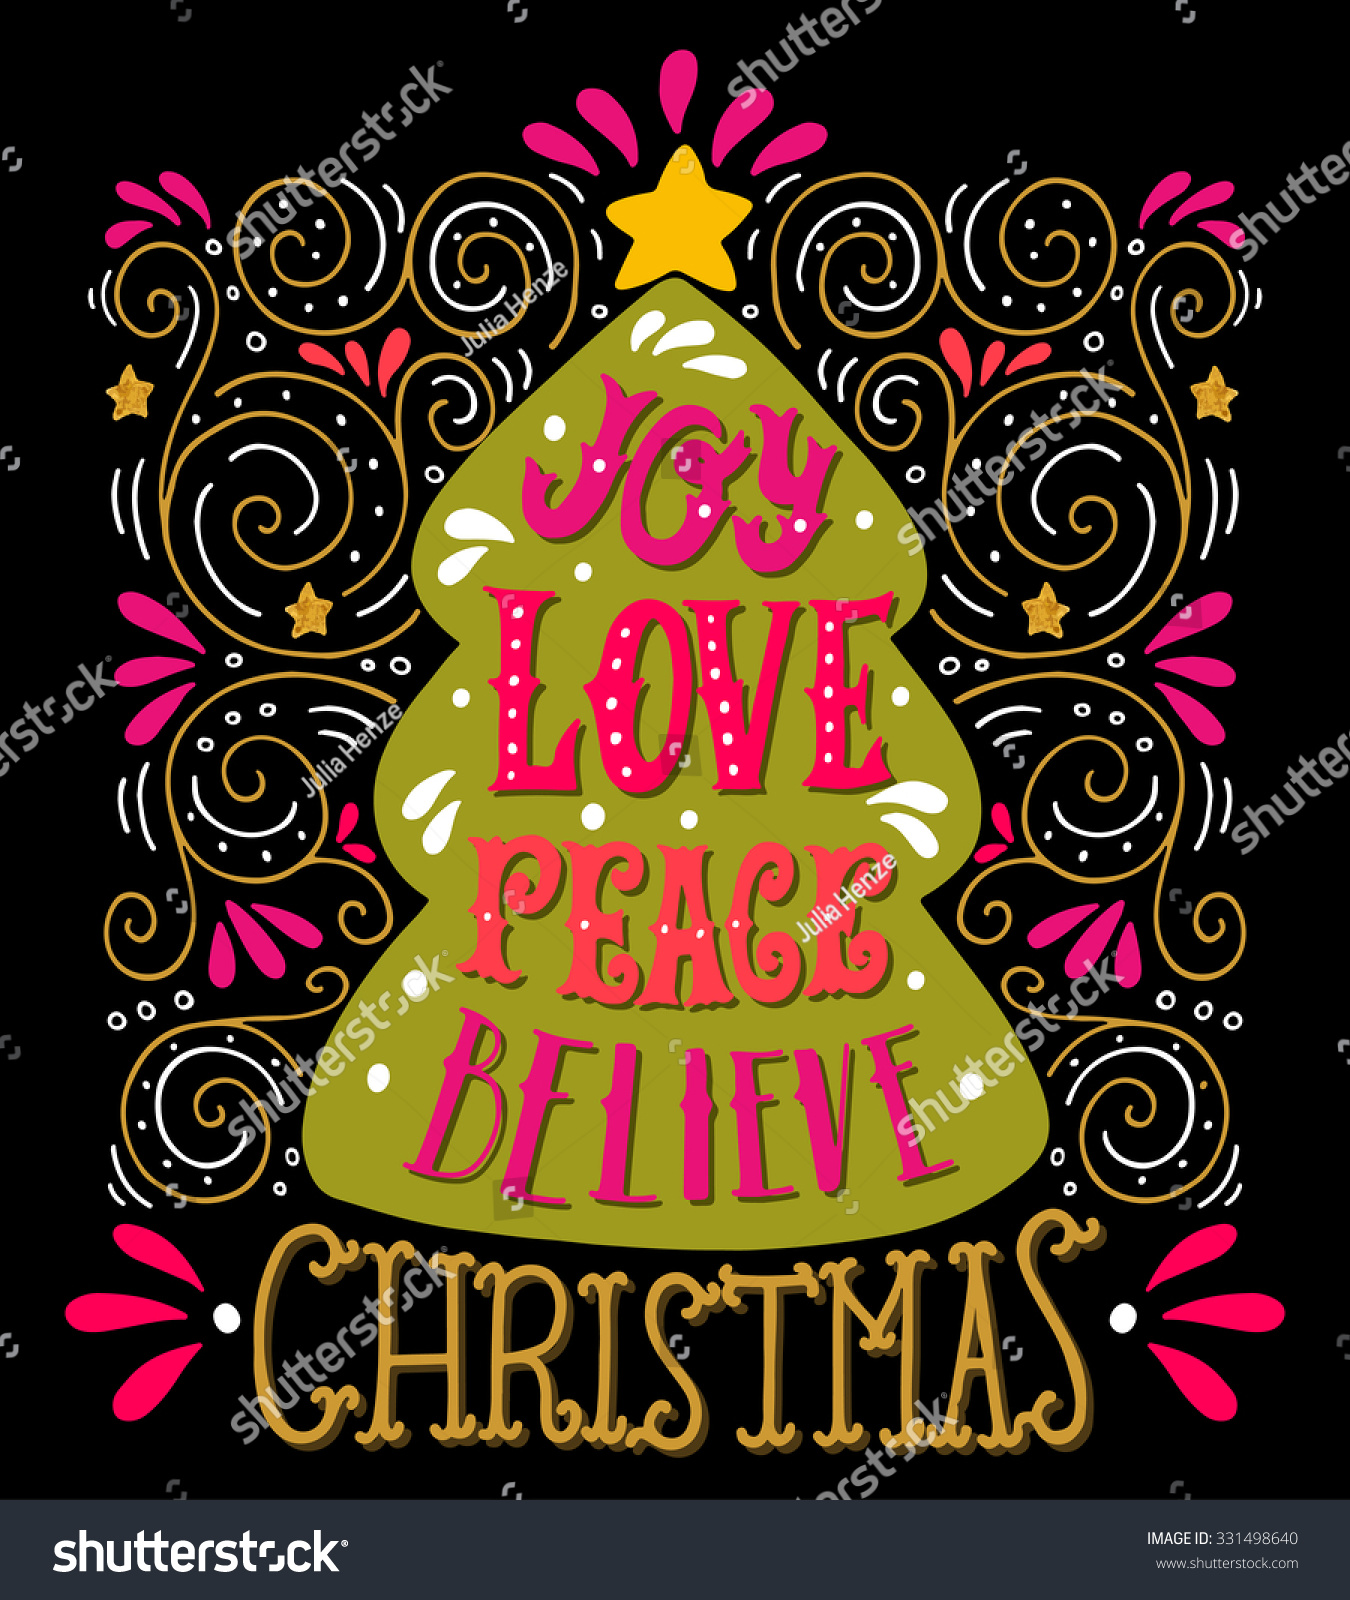 Peace And Joy Quotes: Joy Love Peace Believe. Quote. Merry Christmas Hand